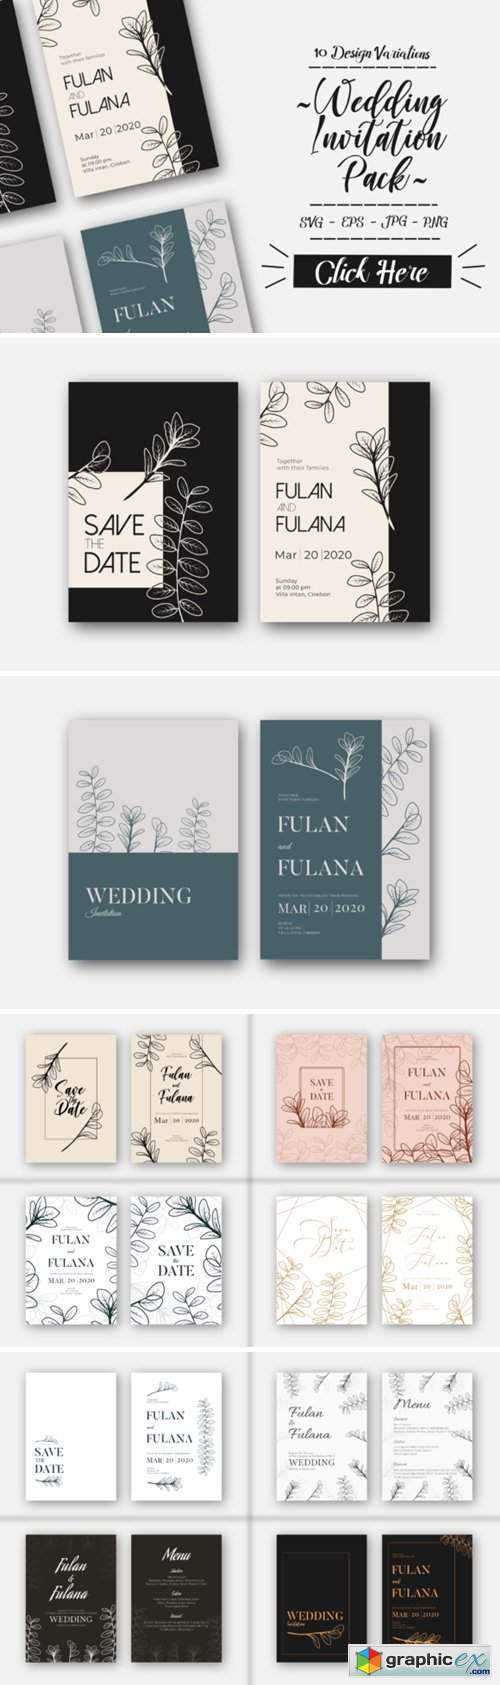 Floral Wedding Invitation Card Pack